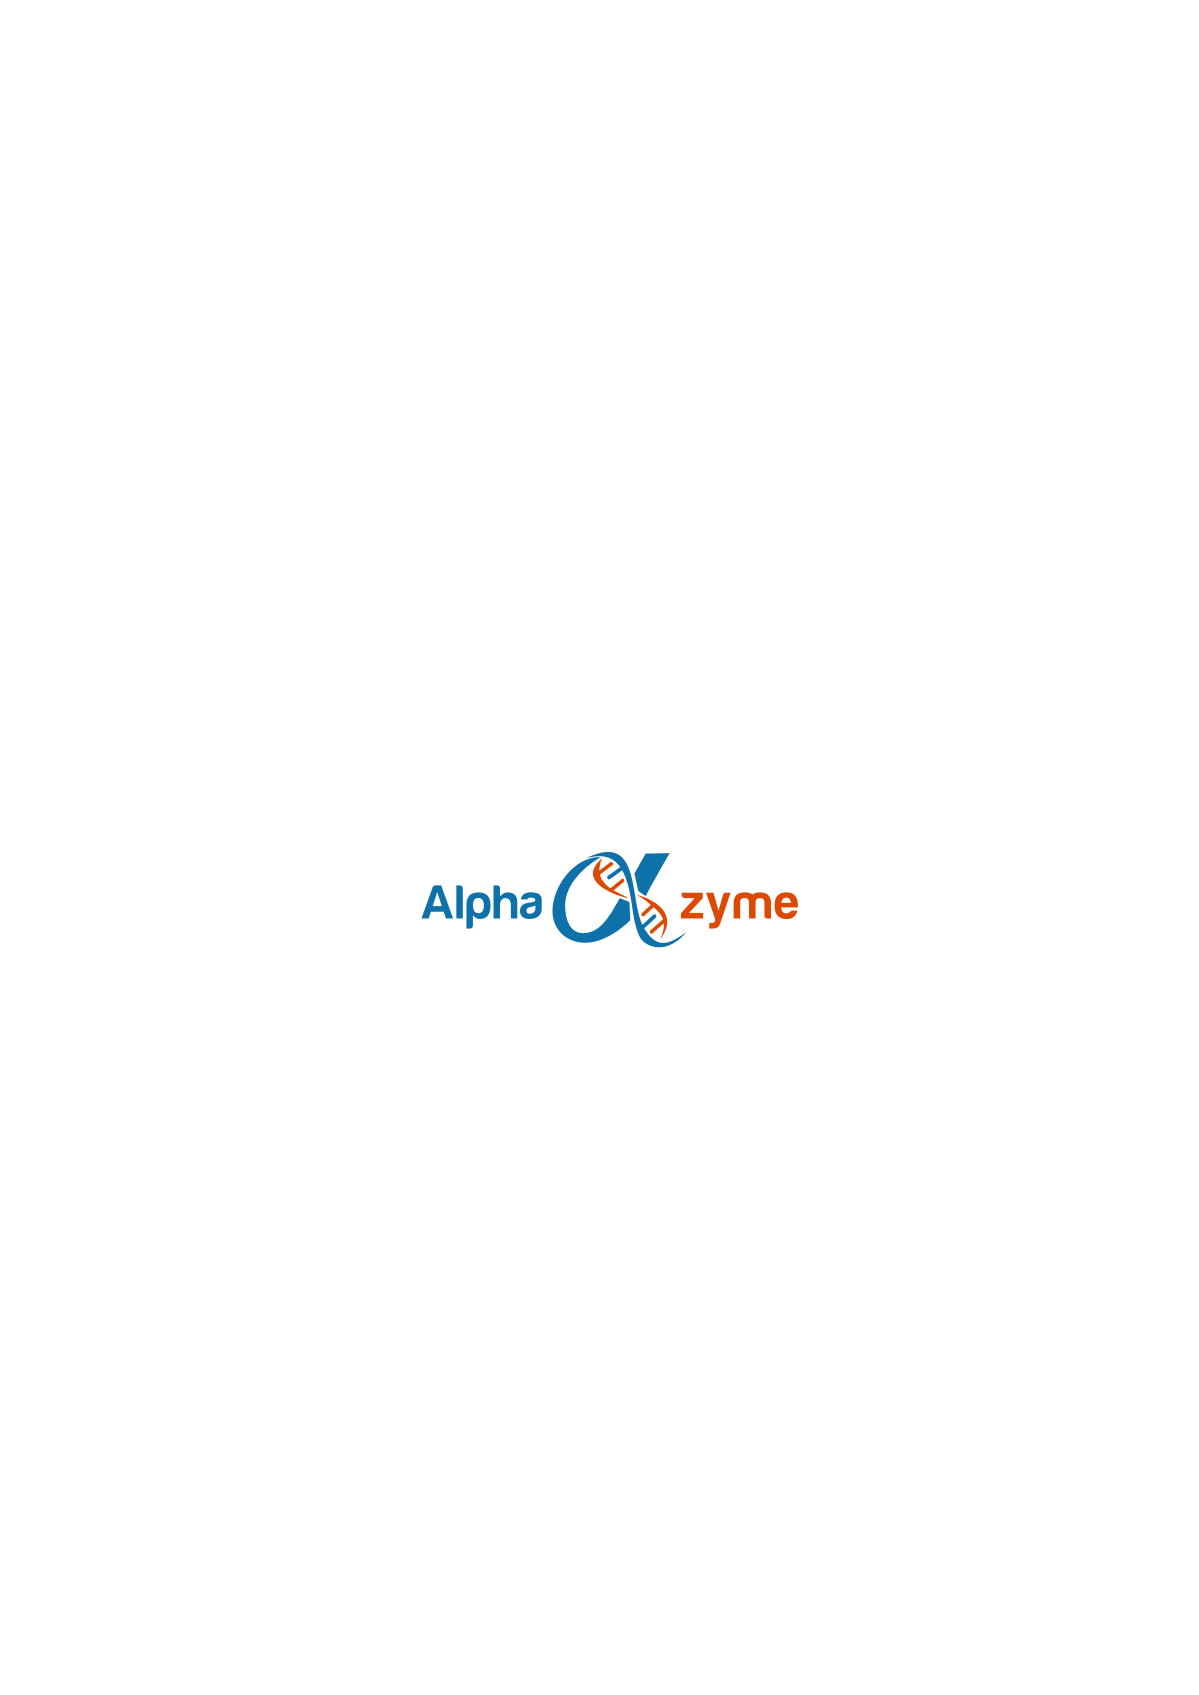 Alphazyme brand style guide